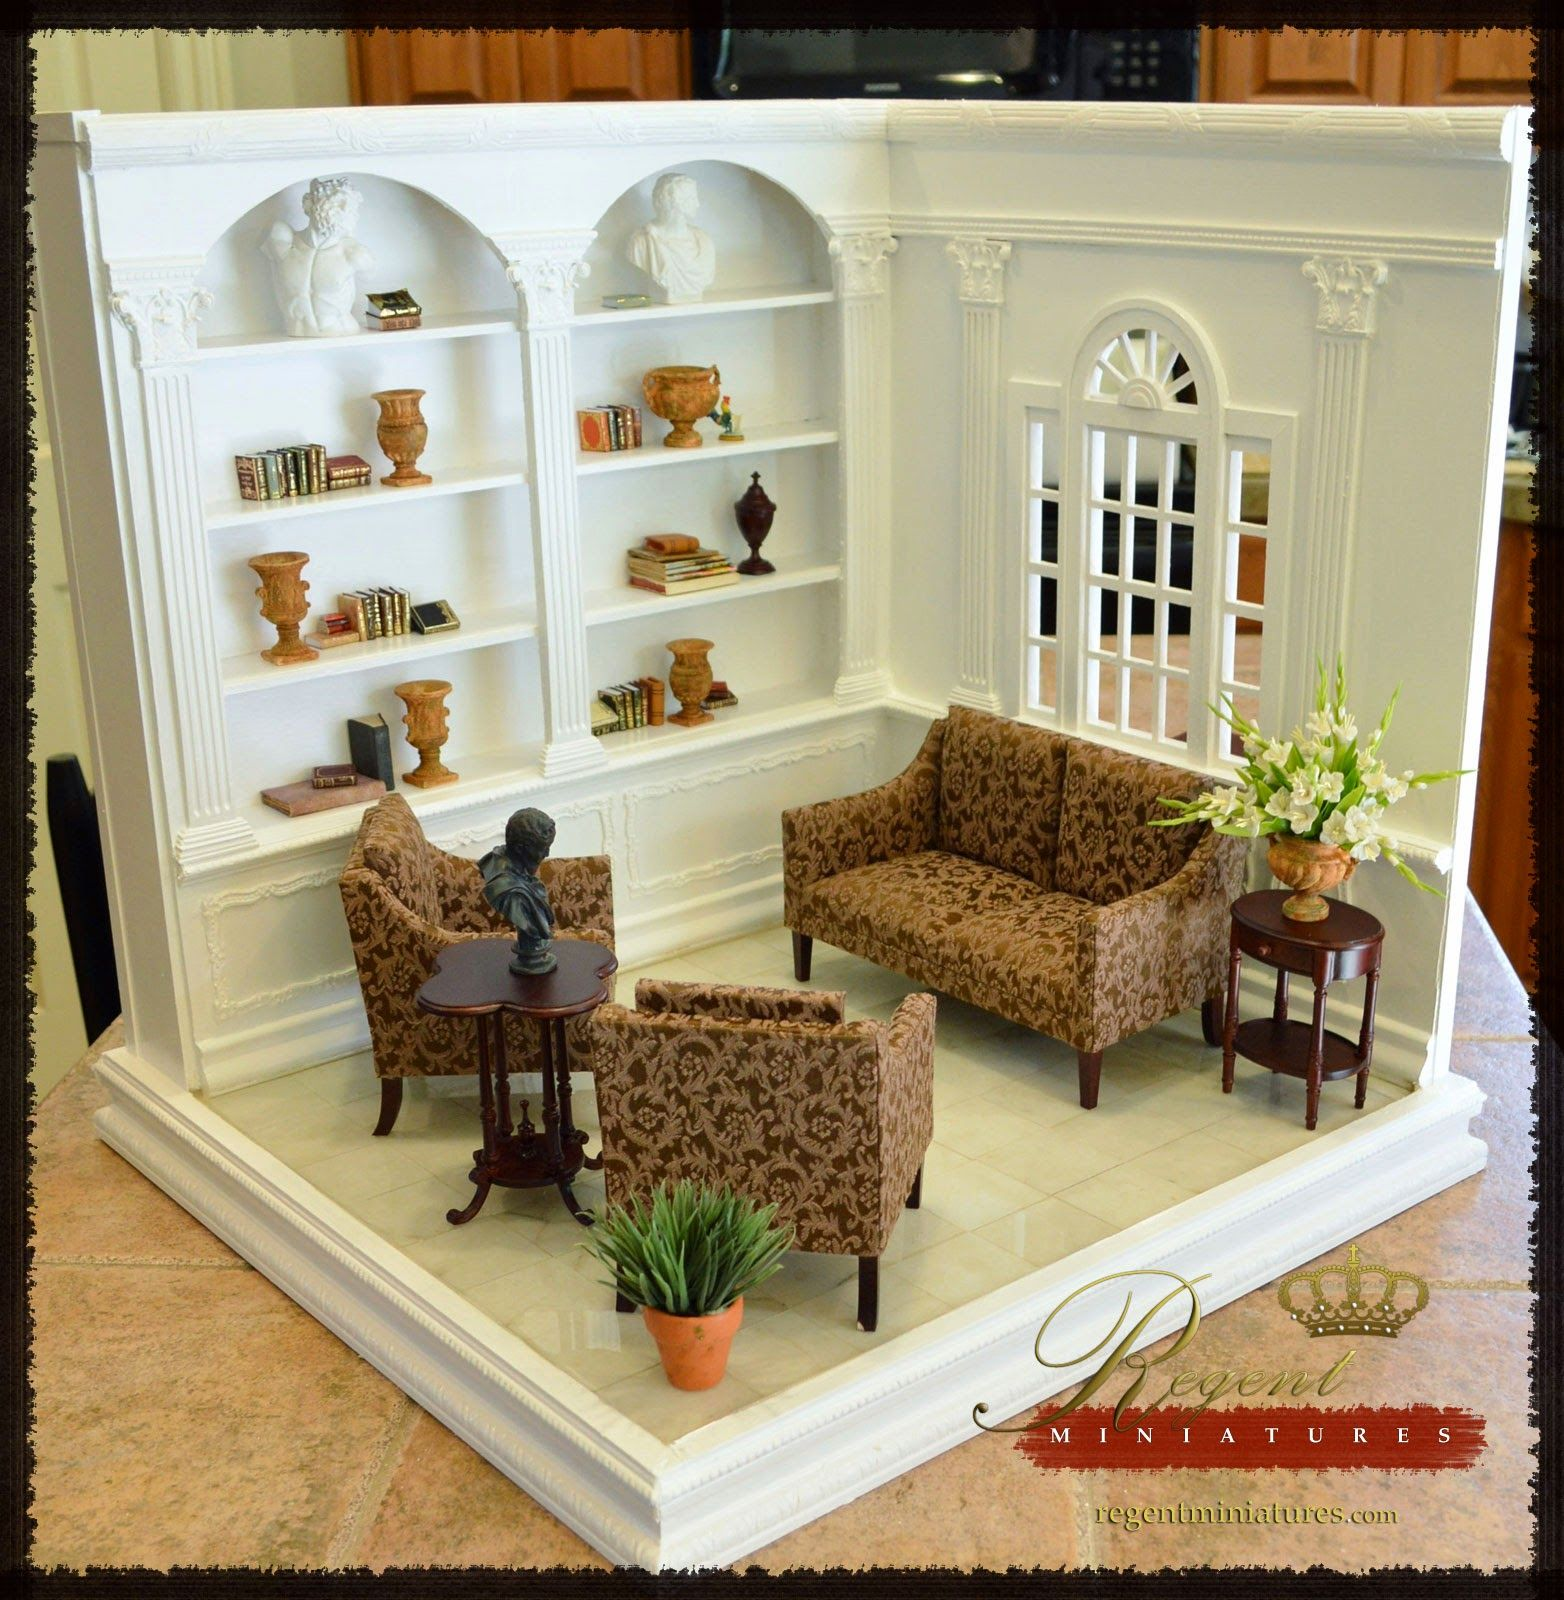 Mini Kitchen Room Box: Regent Miniatures: 1:6 Scale Room Box With Library Coming